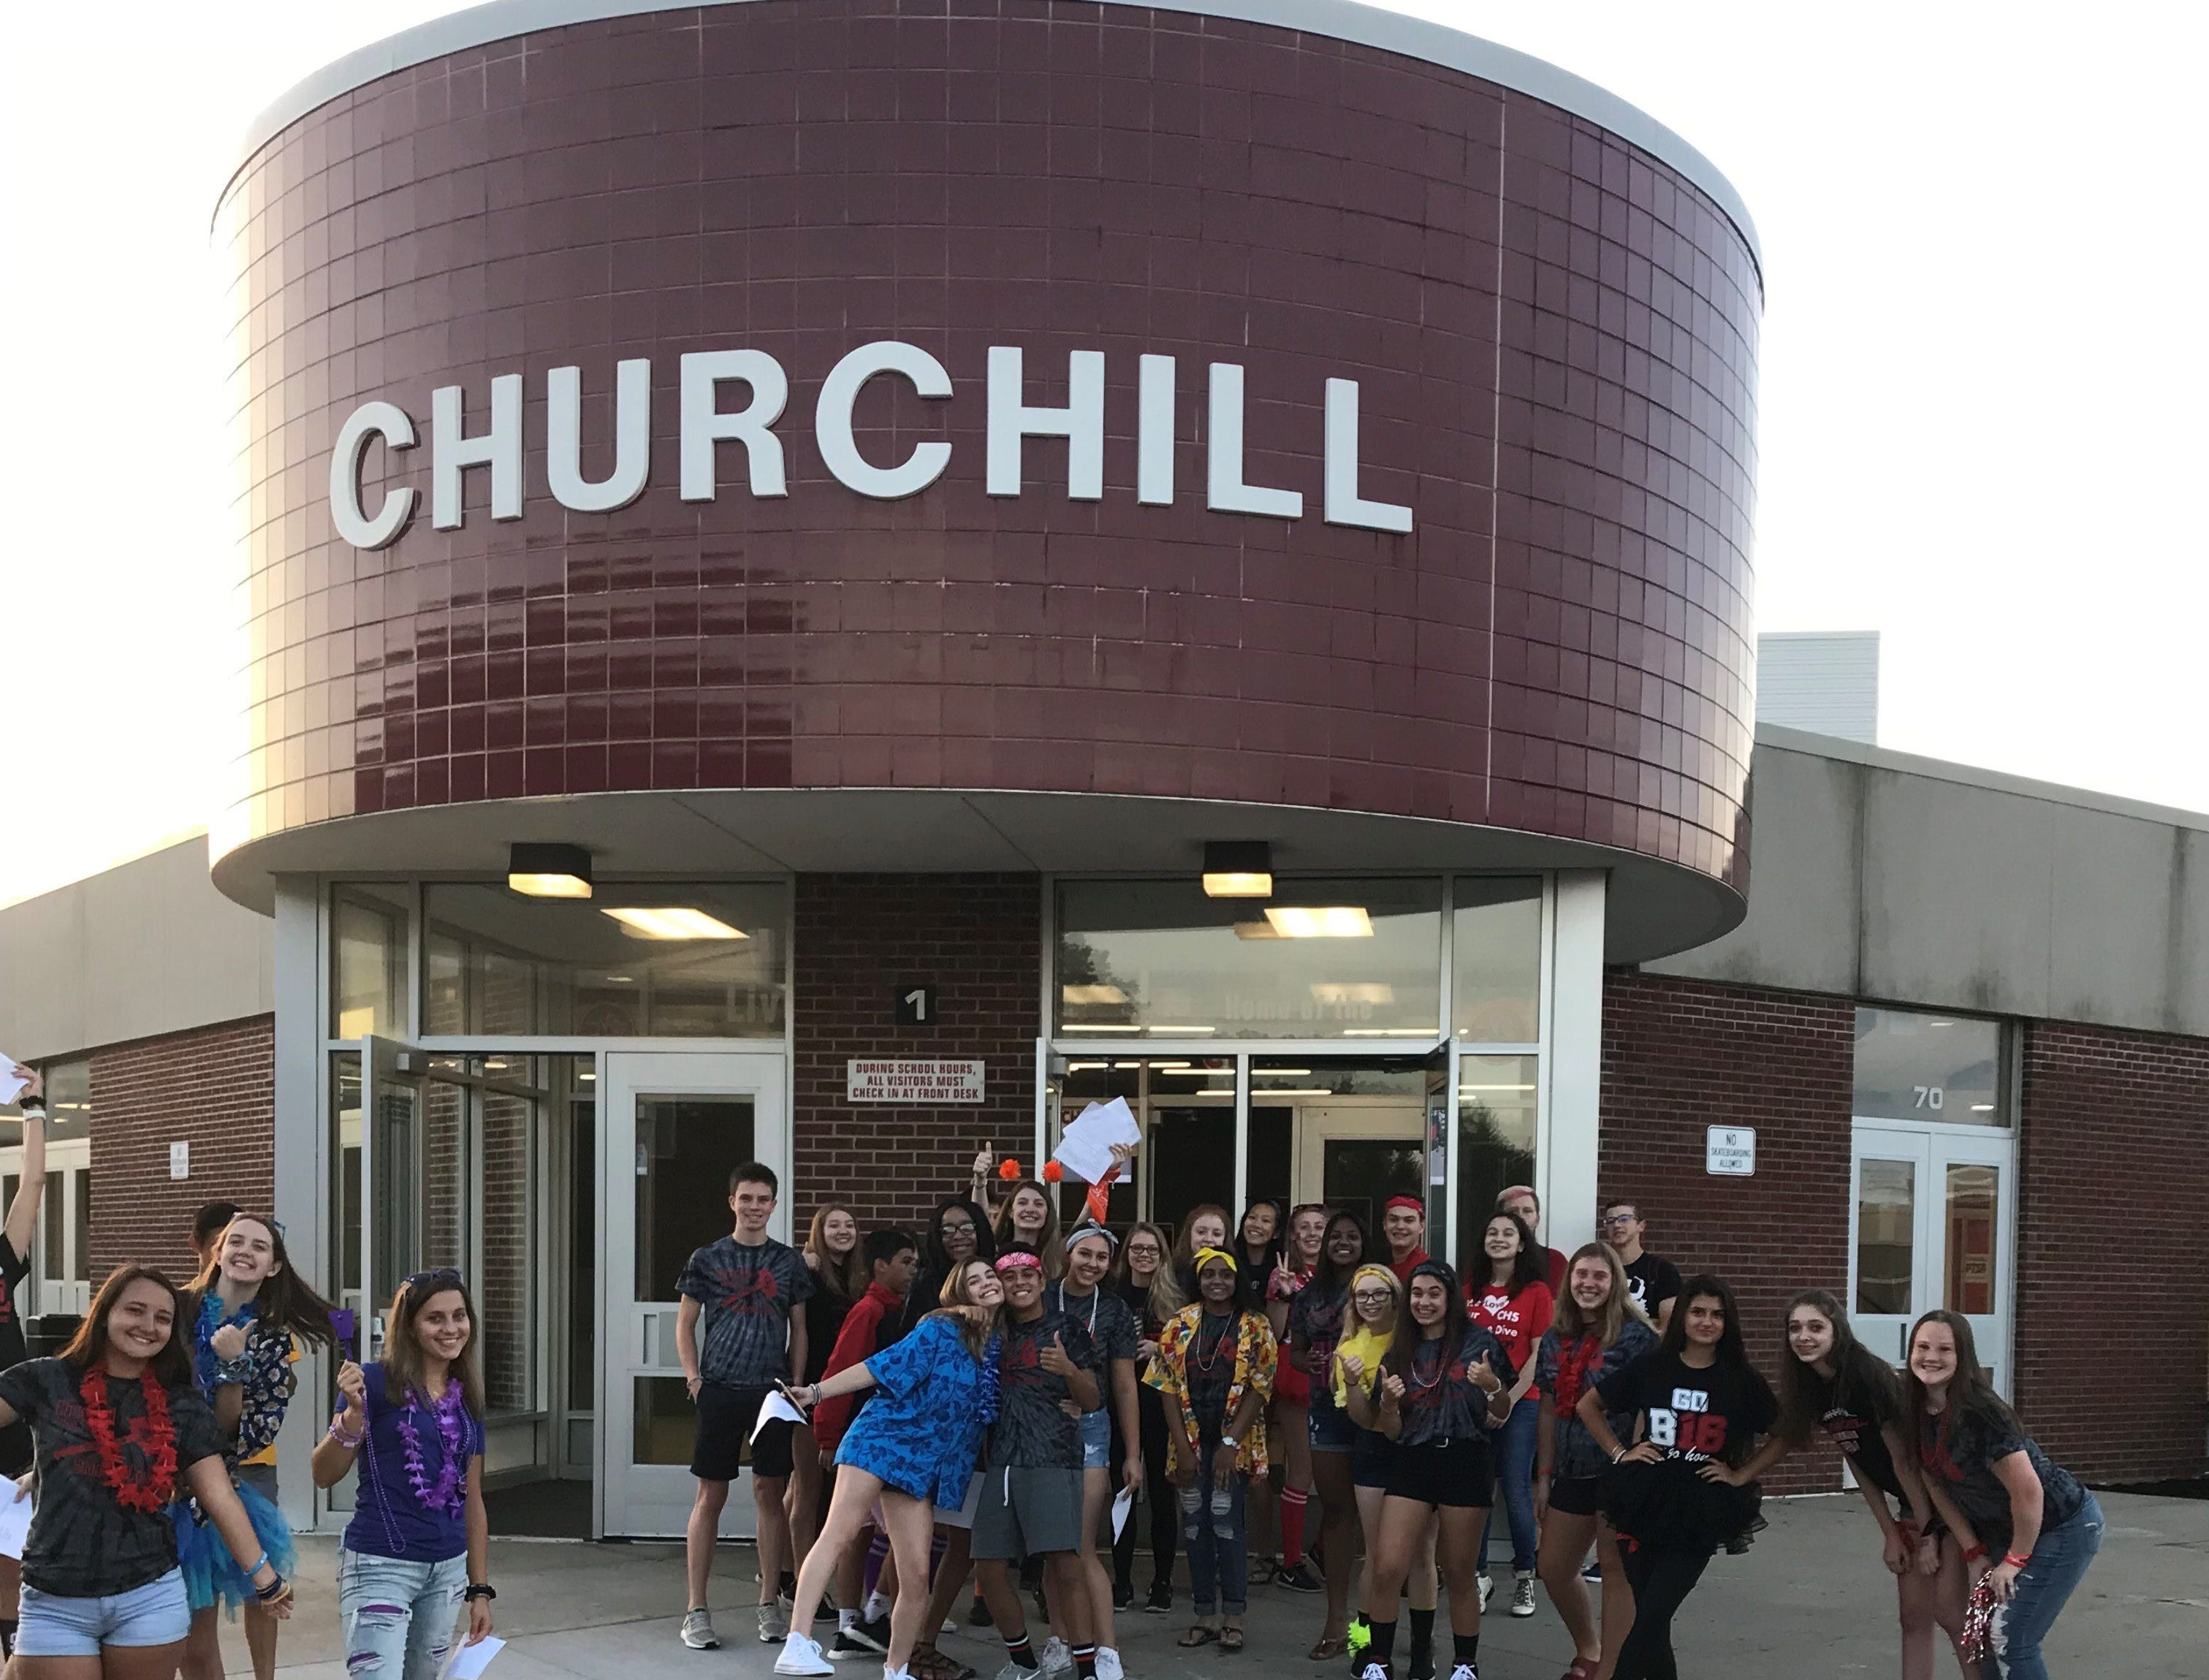 Teachers and students returned to Churchill High School in Livonia on the first day of school Tuesday.